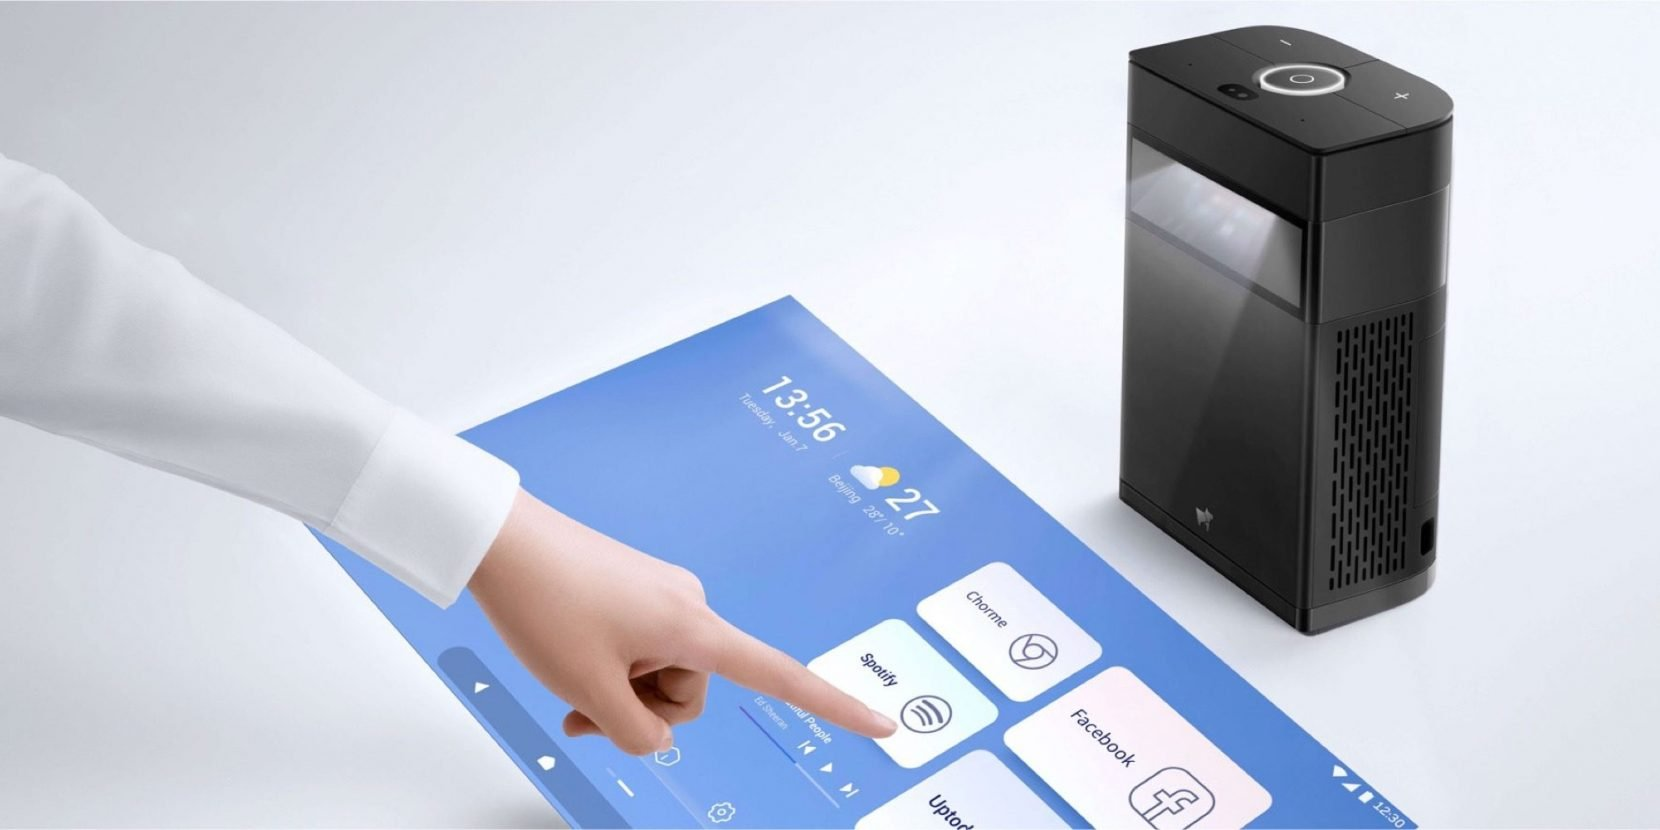 Hachi Interactive Touchscreen Projector